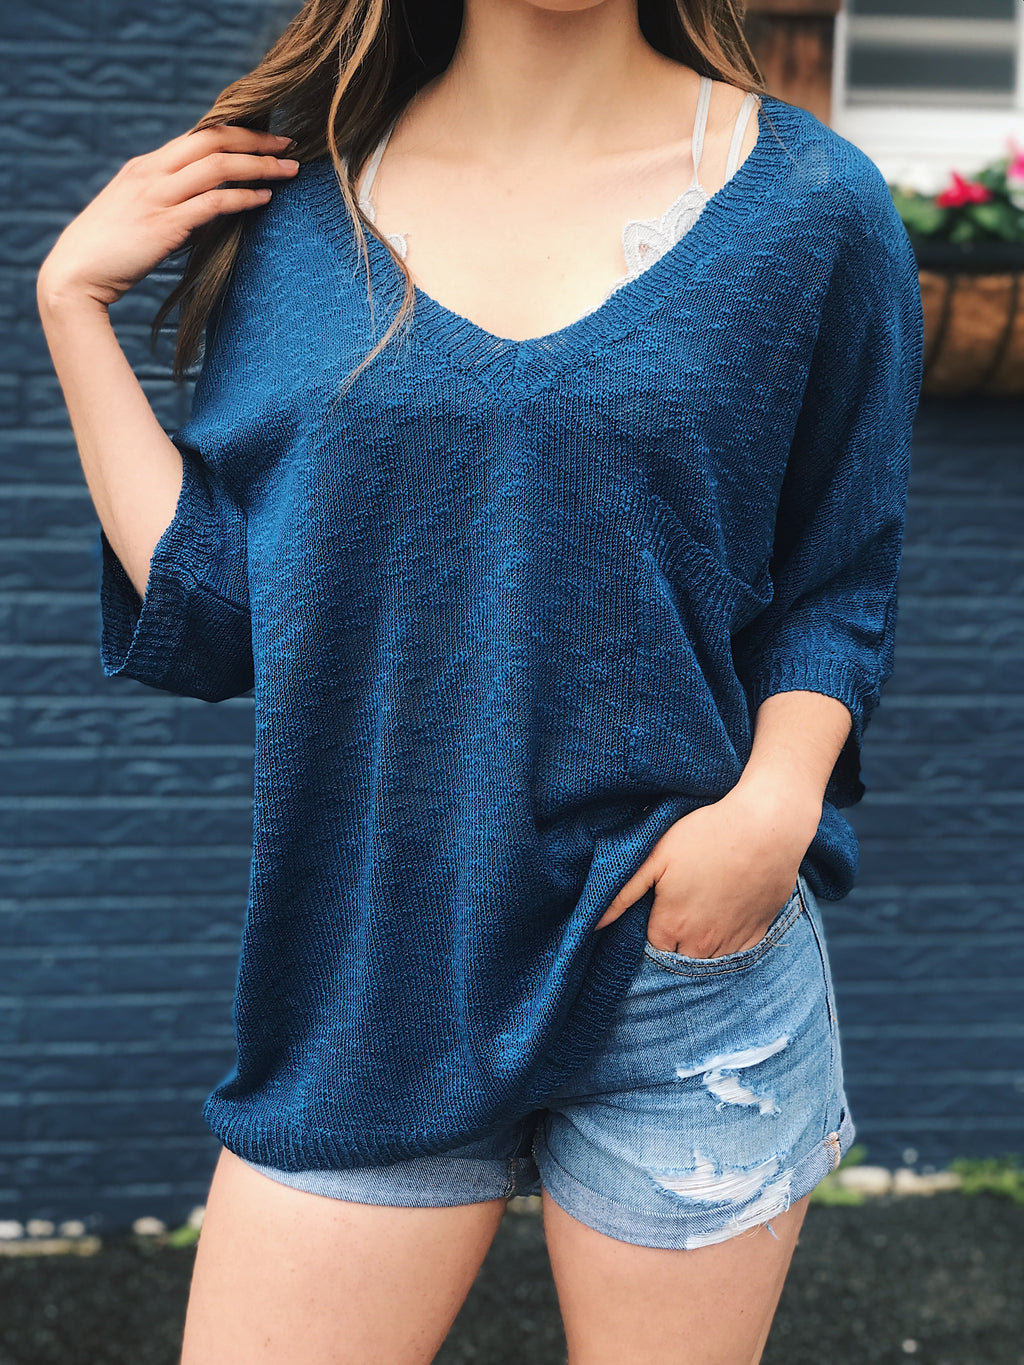 Belong With You Knit Top - More Colors Available